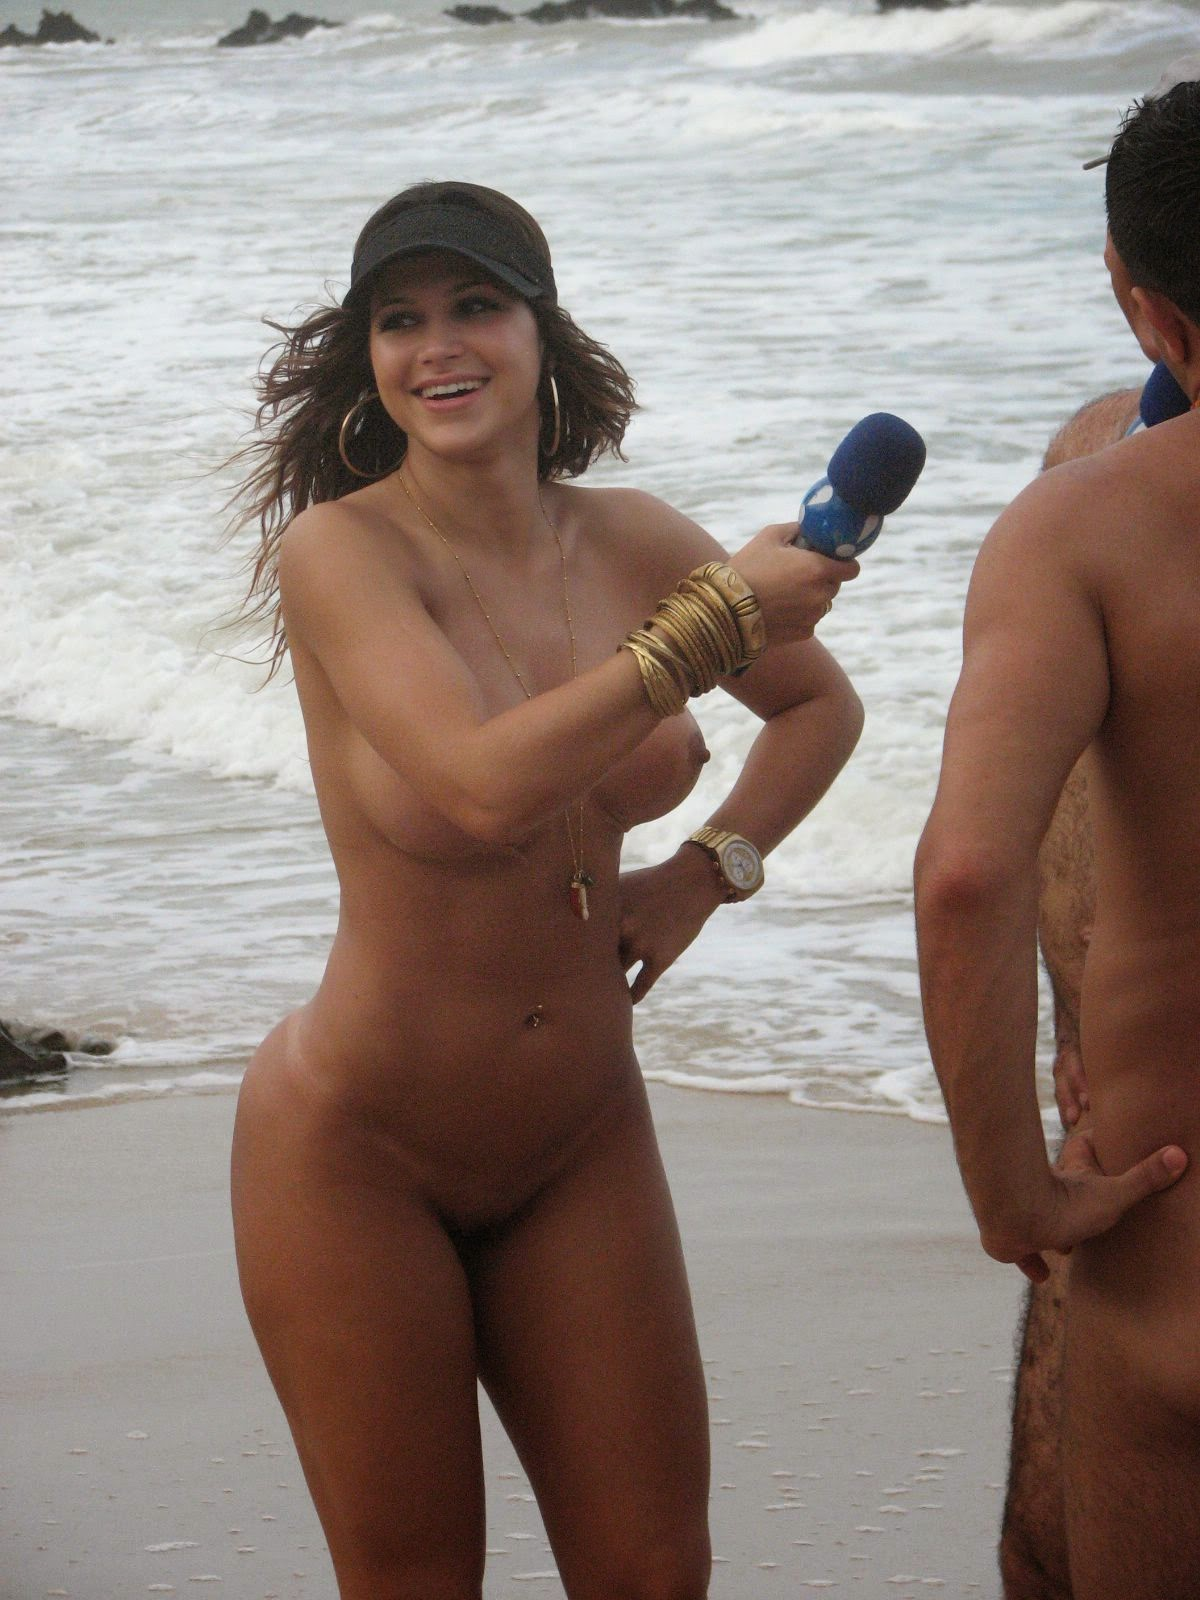 Agree Brazil nude beach women